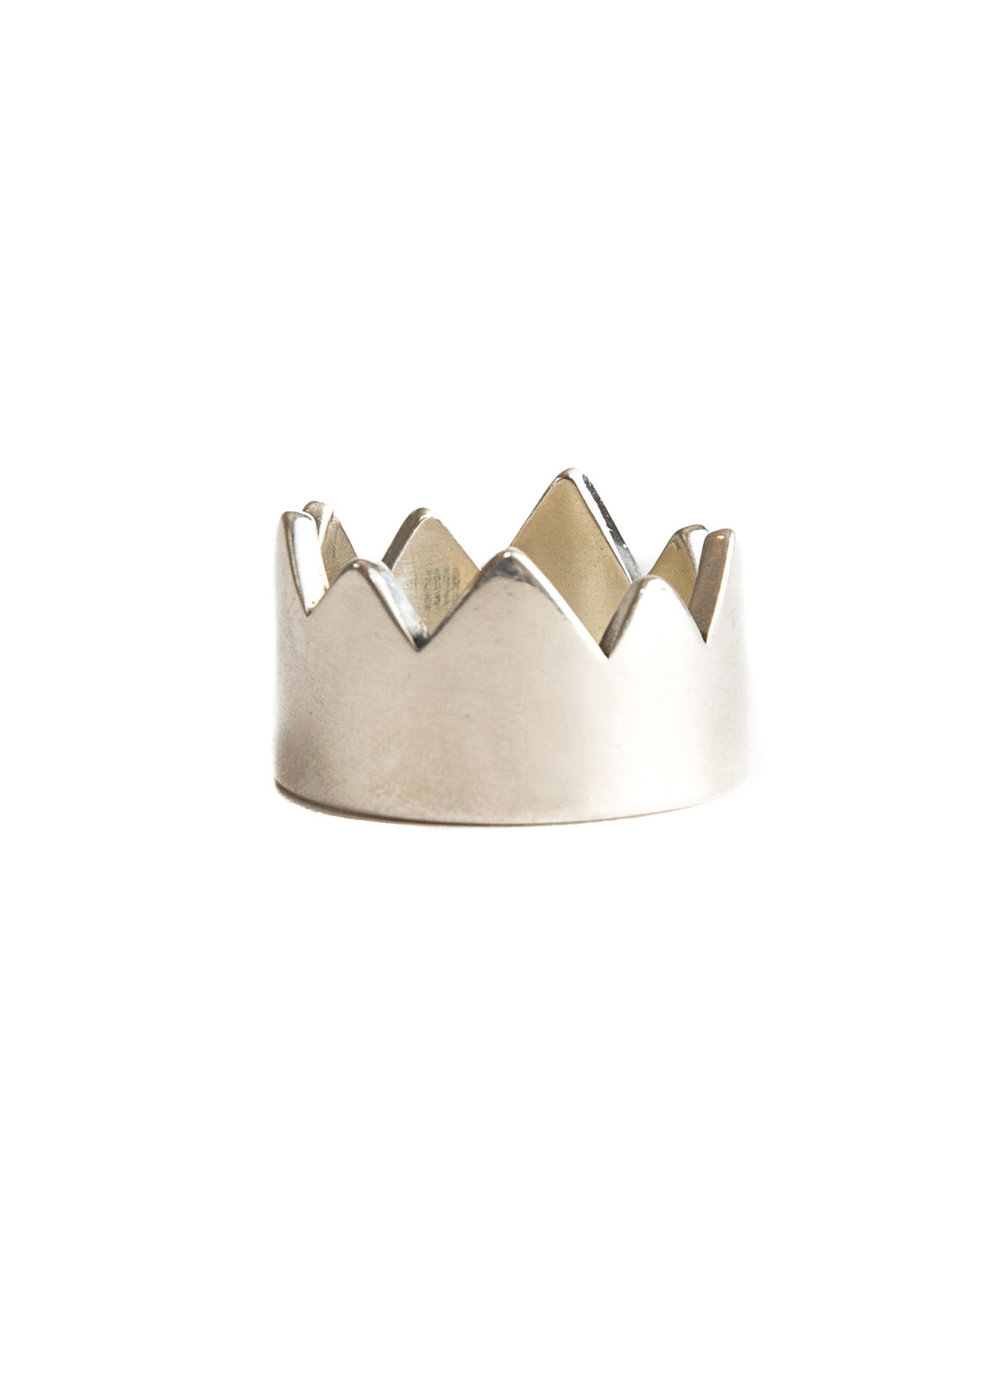 Serge Denime Ring